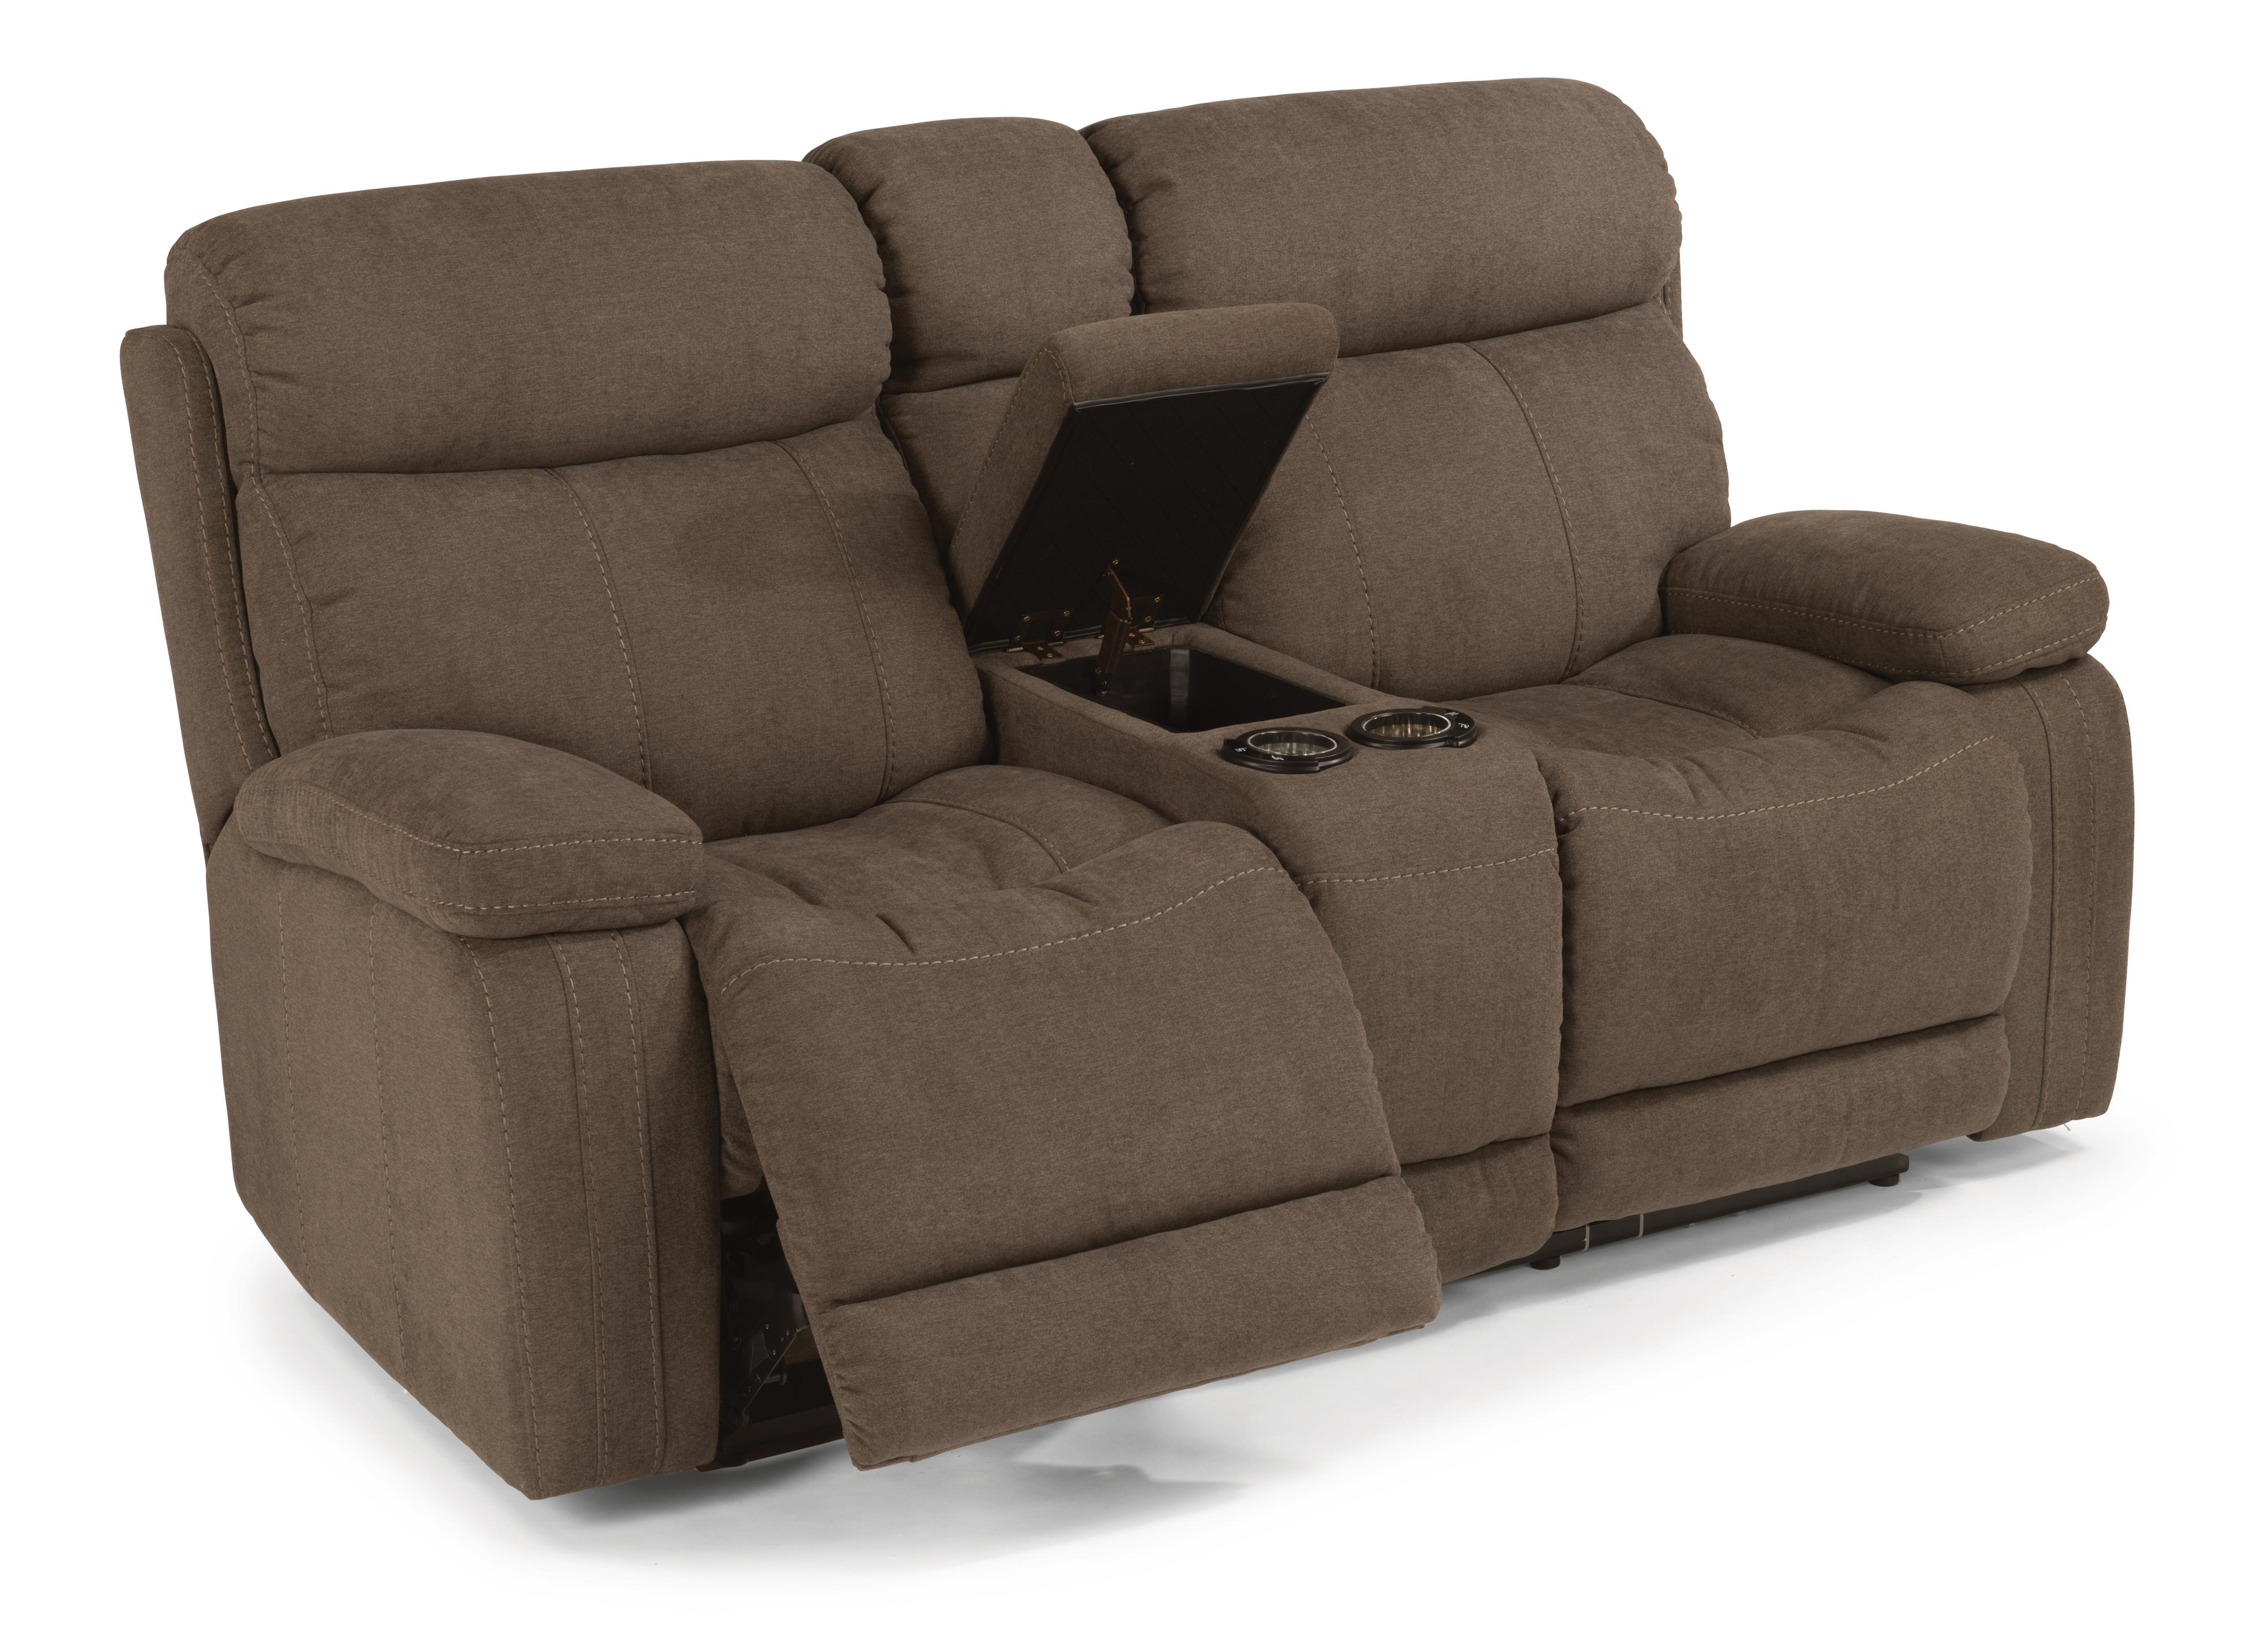 Flexsteel Latitudes-Danika Power Reclining Loveseat w/ Console - Item Number: 1484-604P-414-02